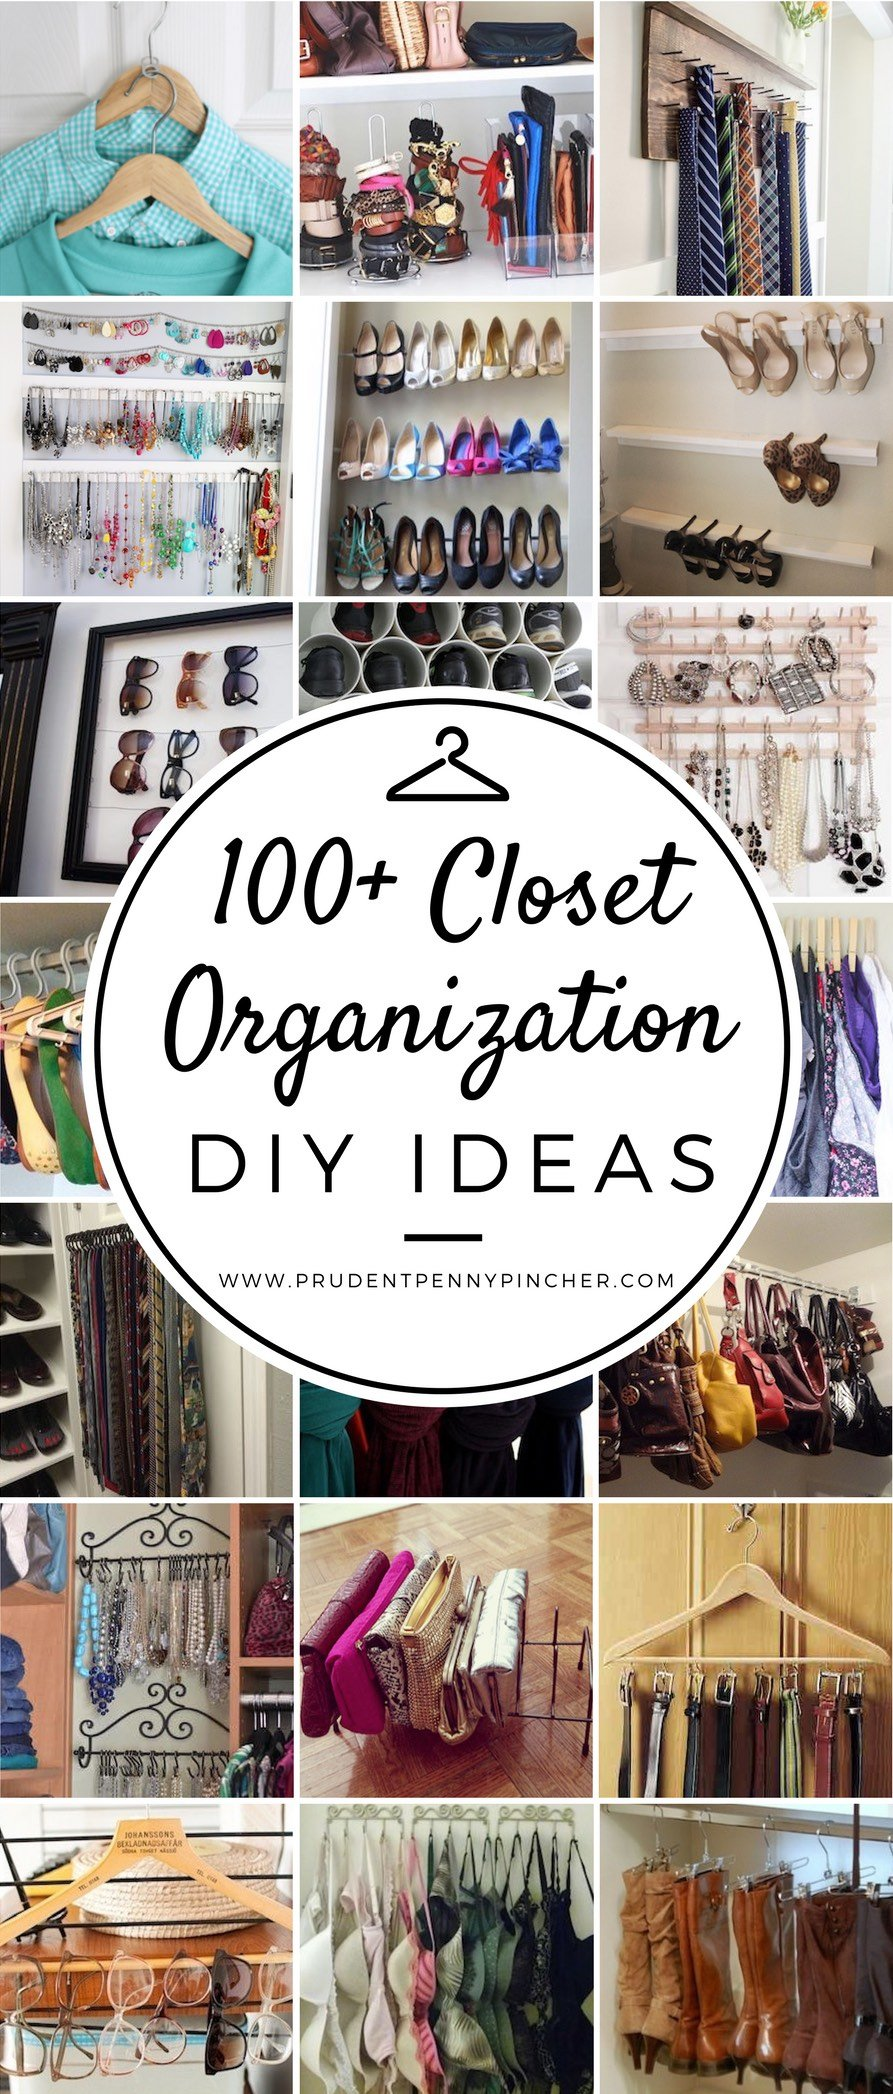 100 Best DIY Closet Organization Ideas - Prudent Penny Pincher